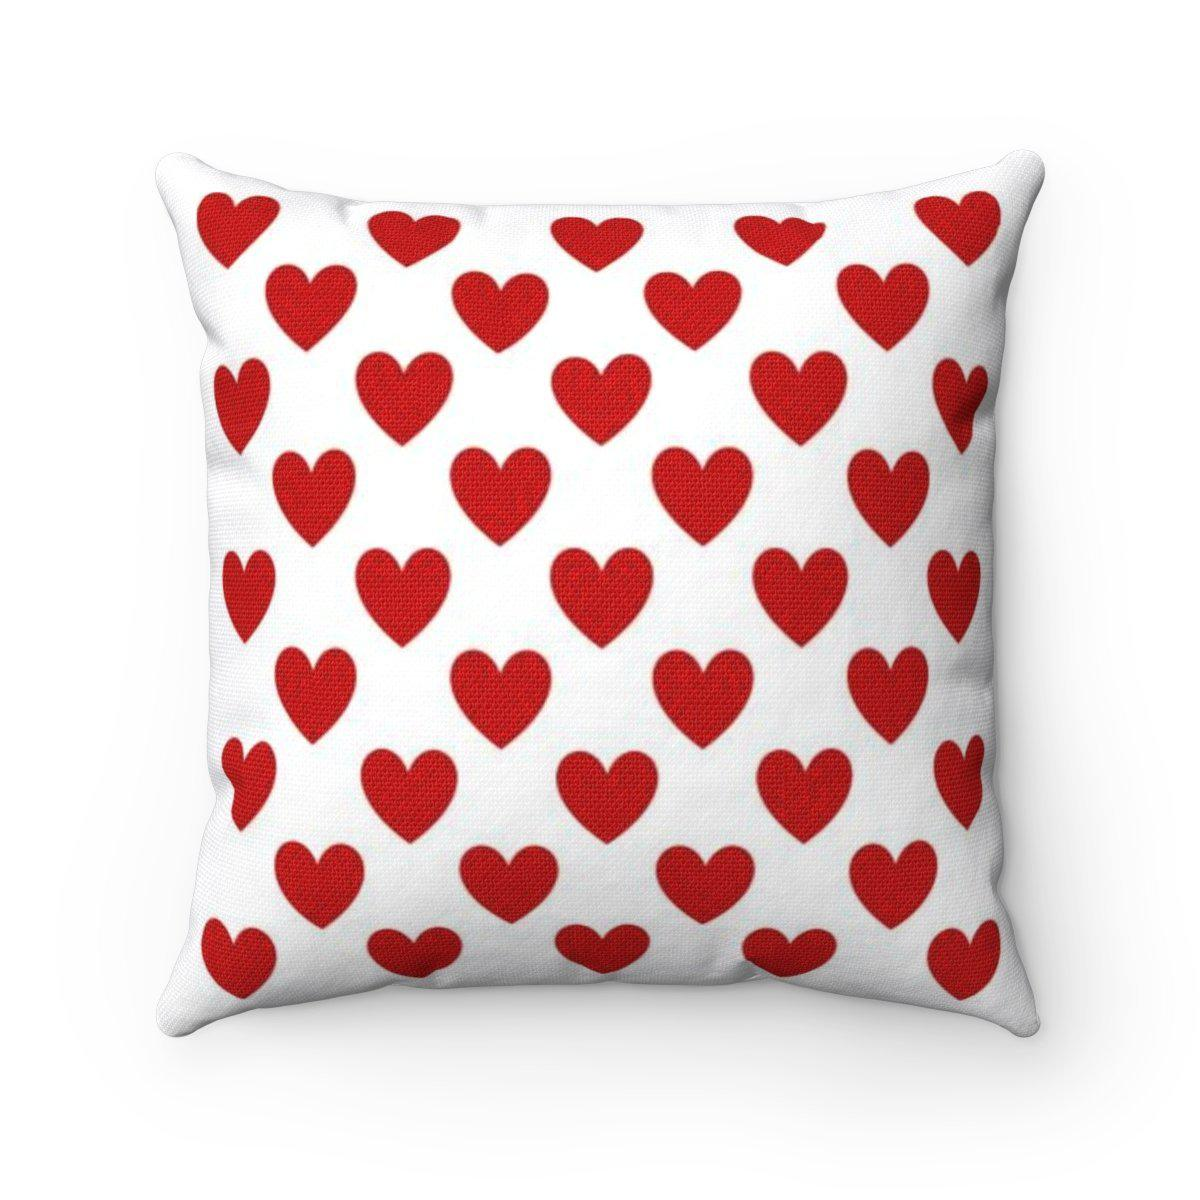 Love | Romantic | Valentine Hearts decorative cushion cover-Home Decor - Decorative Accents - Pillows & Throws - Decorative Pillows-Maison d'Elite-14x14-Très Elite